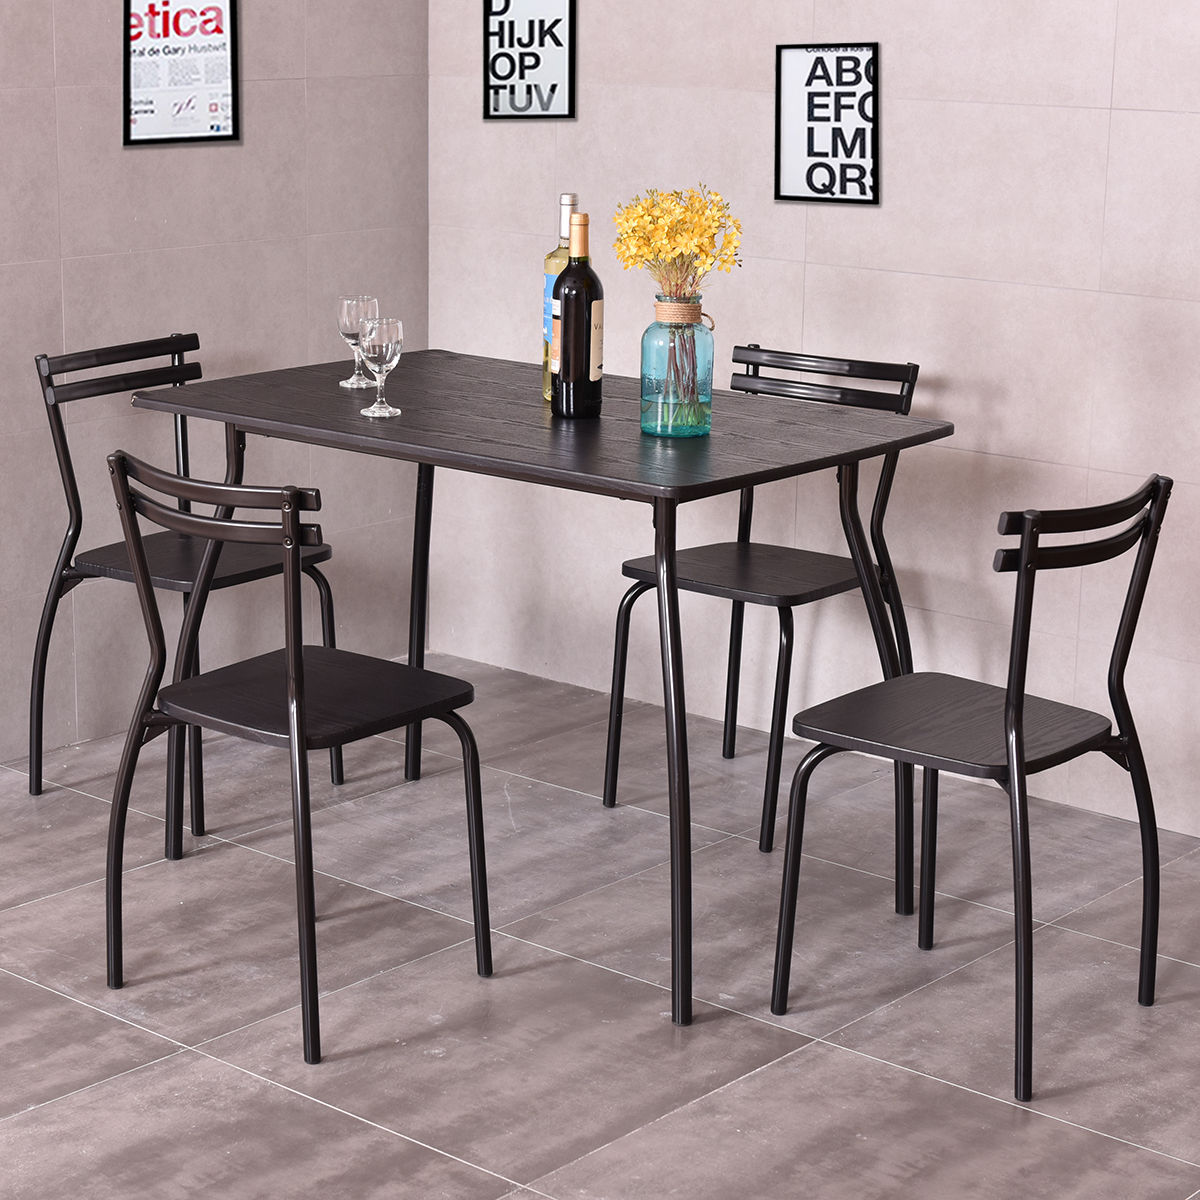 4 Chair Dining Sets costway 5 piece dining set table and 4 chairs home kitchen room